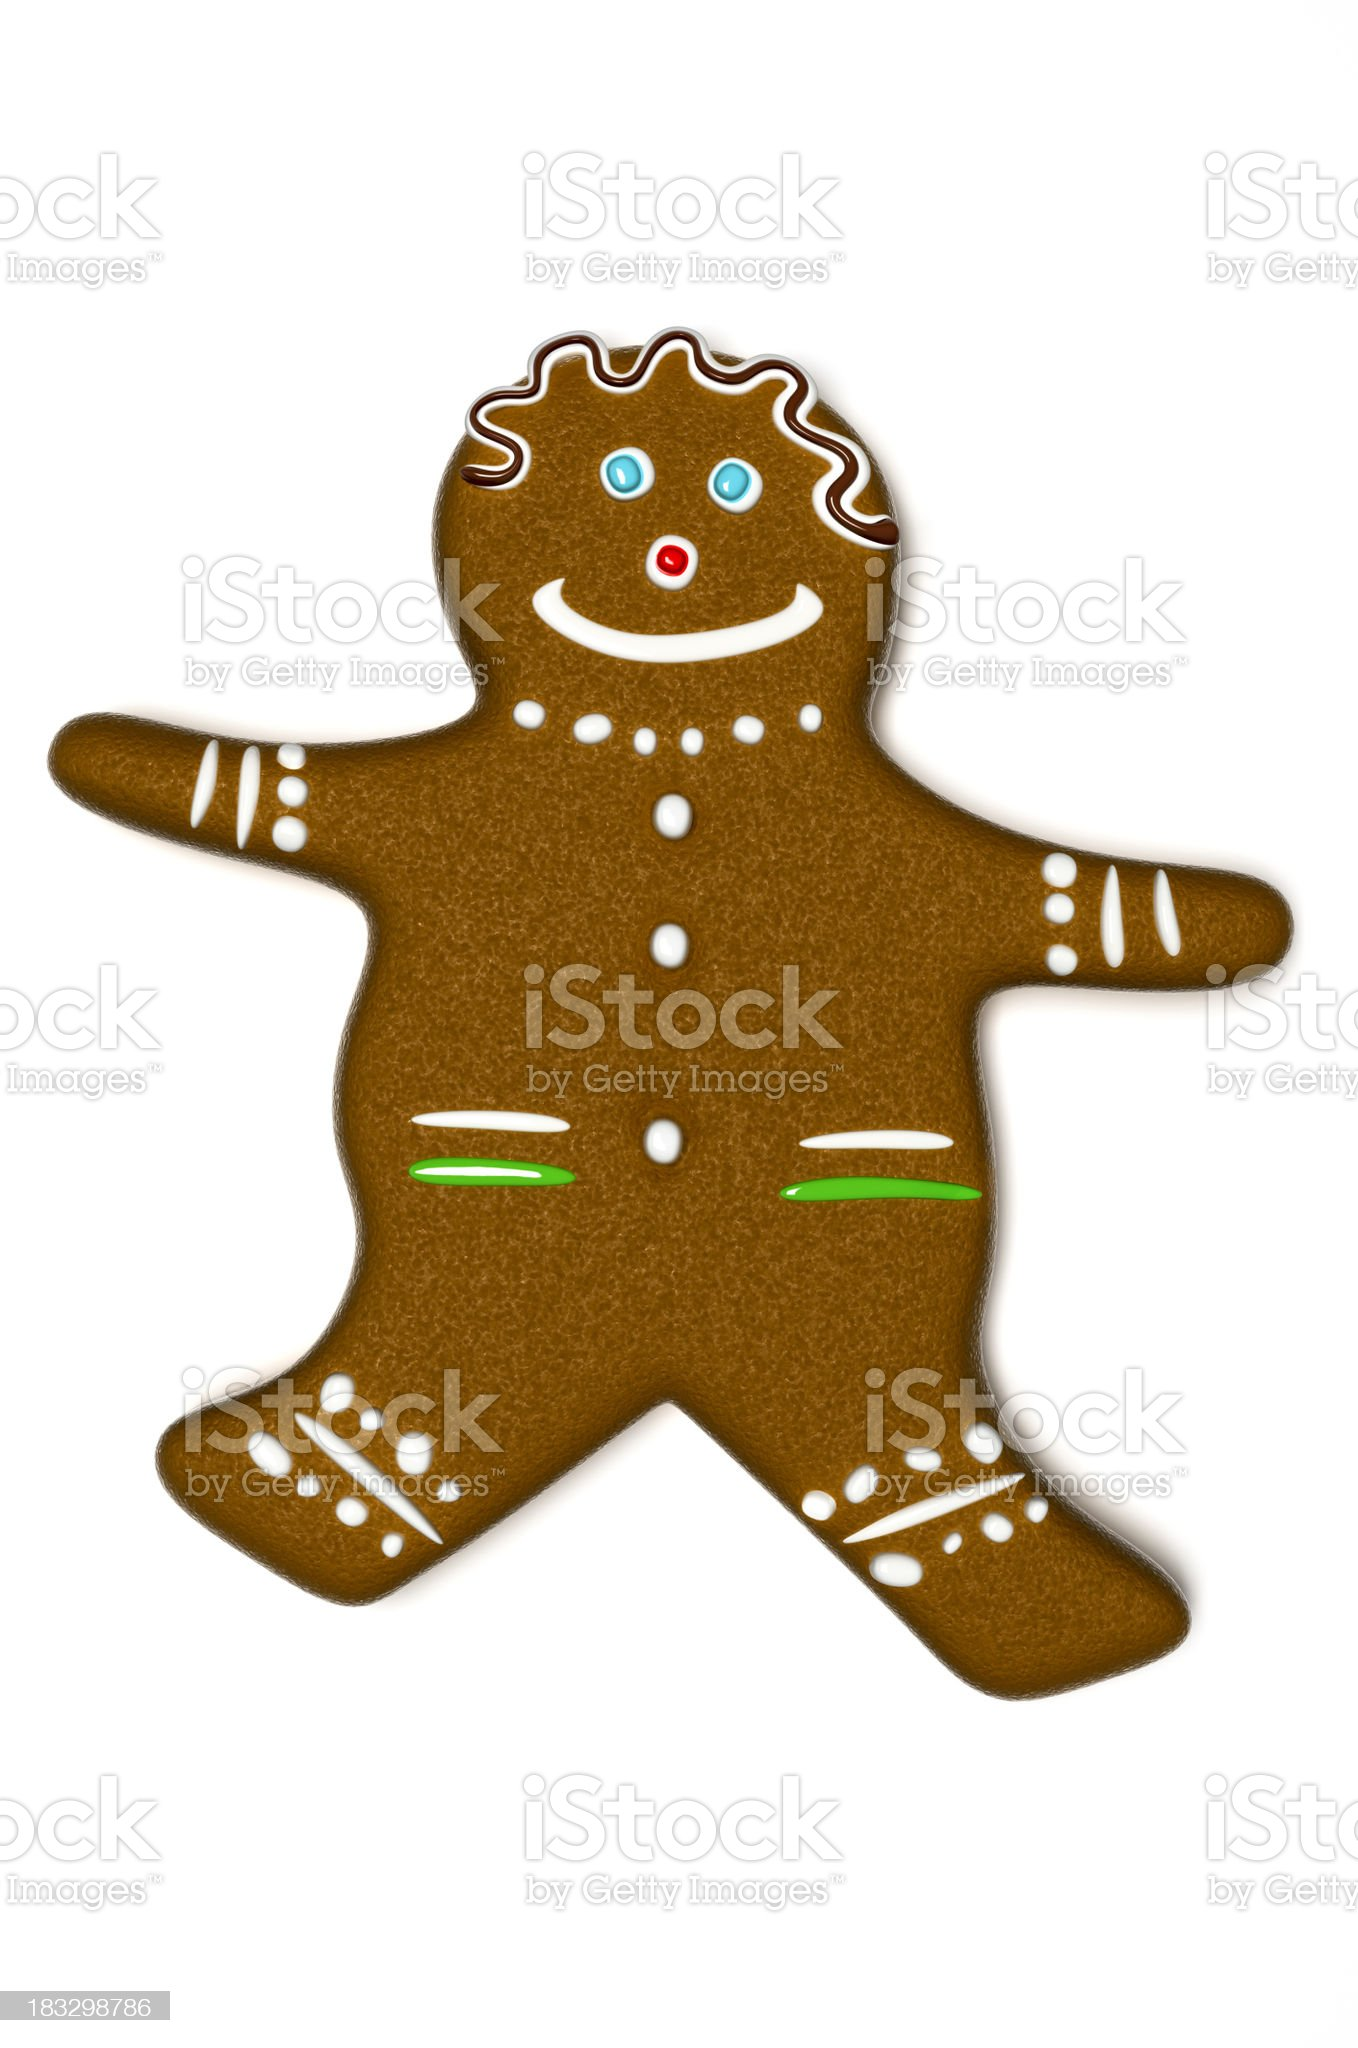 Gingerbread Man on White Background, Clipping Path included (XXXL) royalty-free stock photo